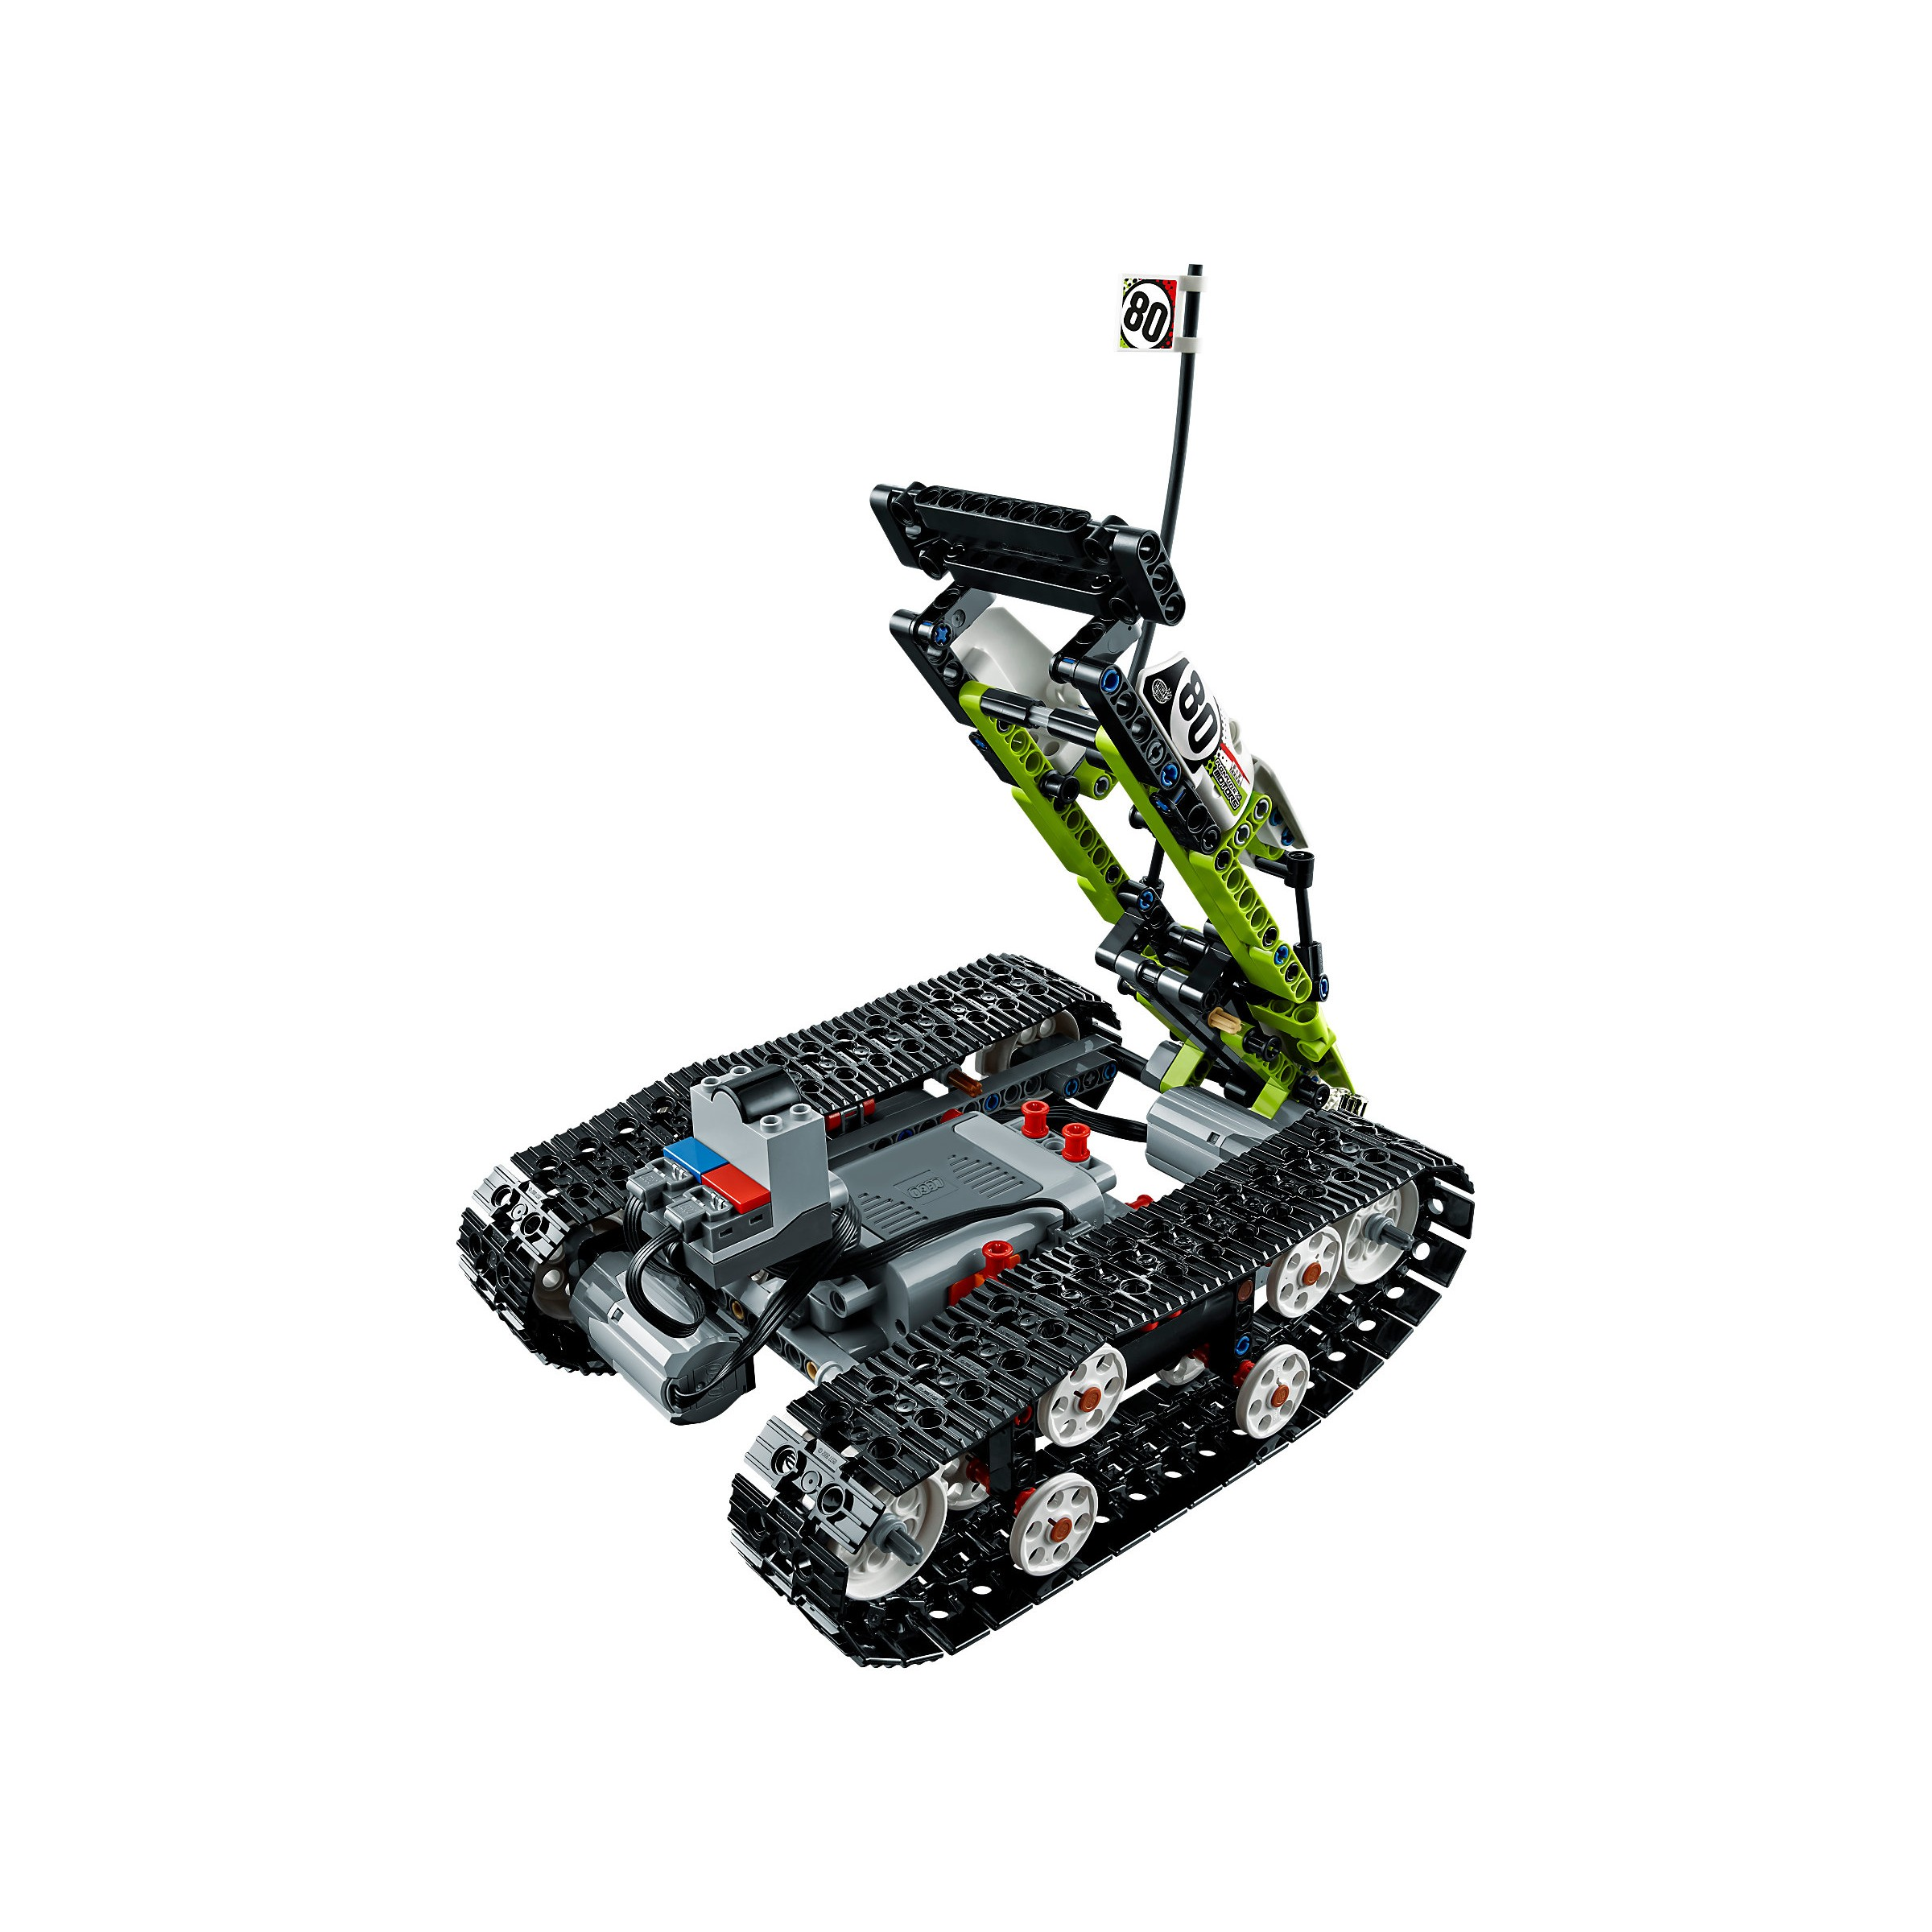 lego 42065 technic remote control rc tracked racer at hobby warehouse. Black Bedroom Furniture Sets. Home Design Ideas